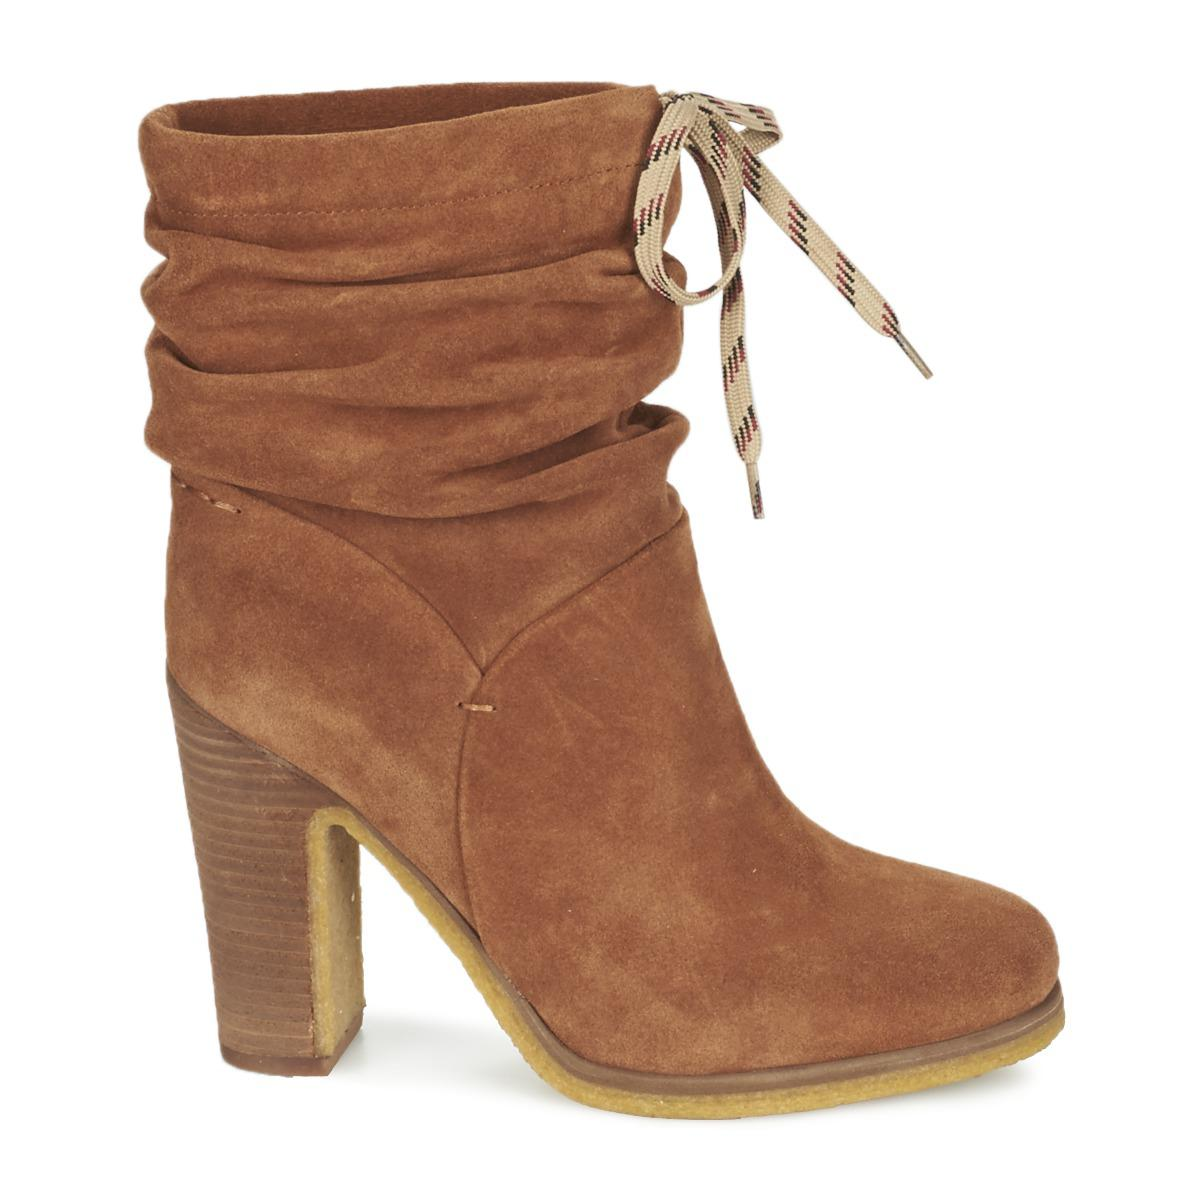 Free Shipping 2018 Newest Chloé SB27116 women's Low Ankle Boots in Sale Pre Order With Paypal Cheap Online Bhv4cEYJ4